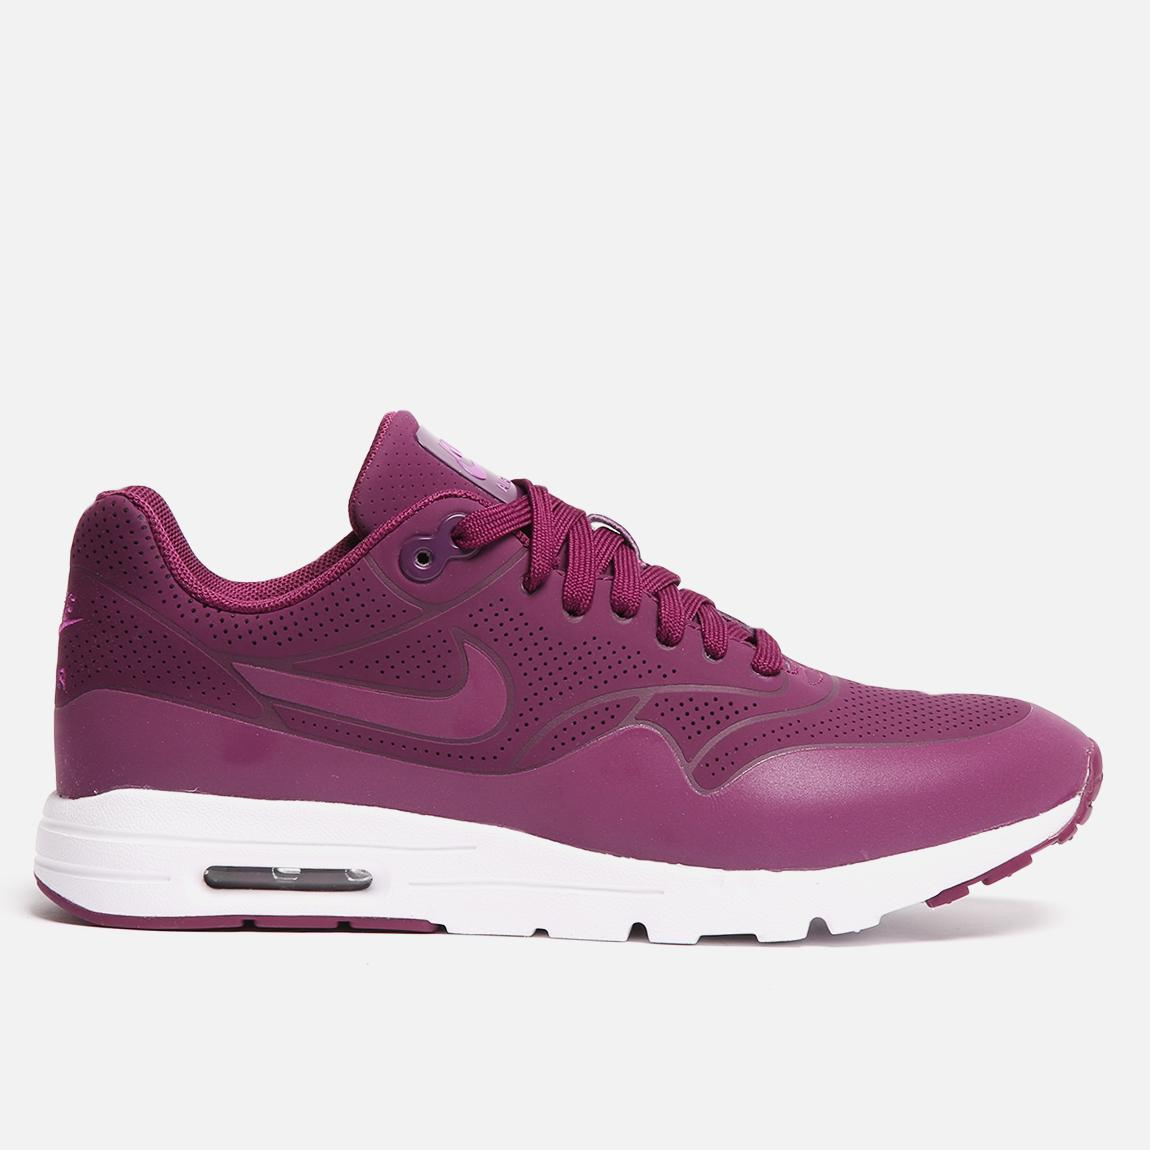 timeless design eca82 29417 Air Max 1 Ultra Moire - 704995-500 - Mulberry Nike Sneakers   Superbalist.com